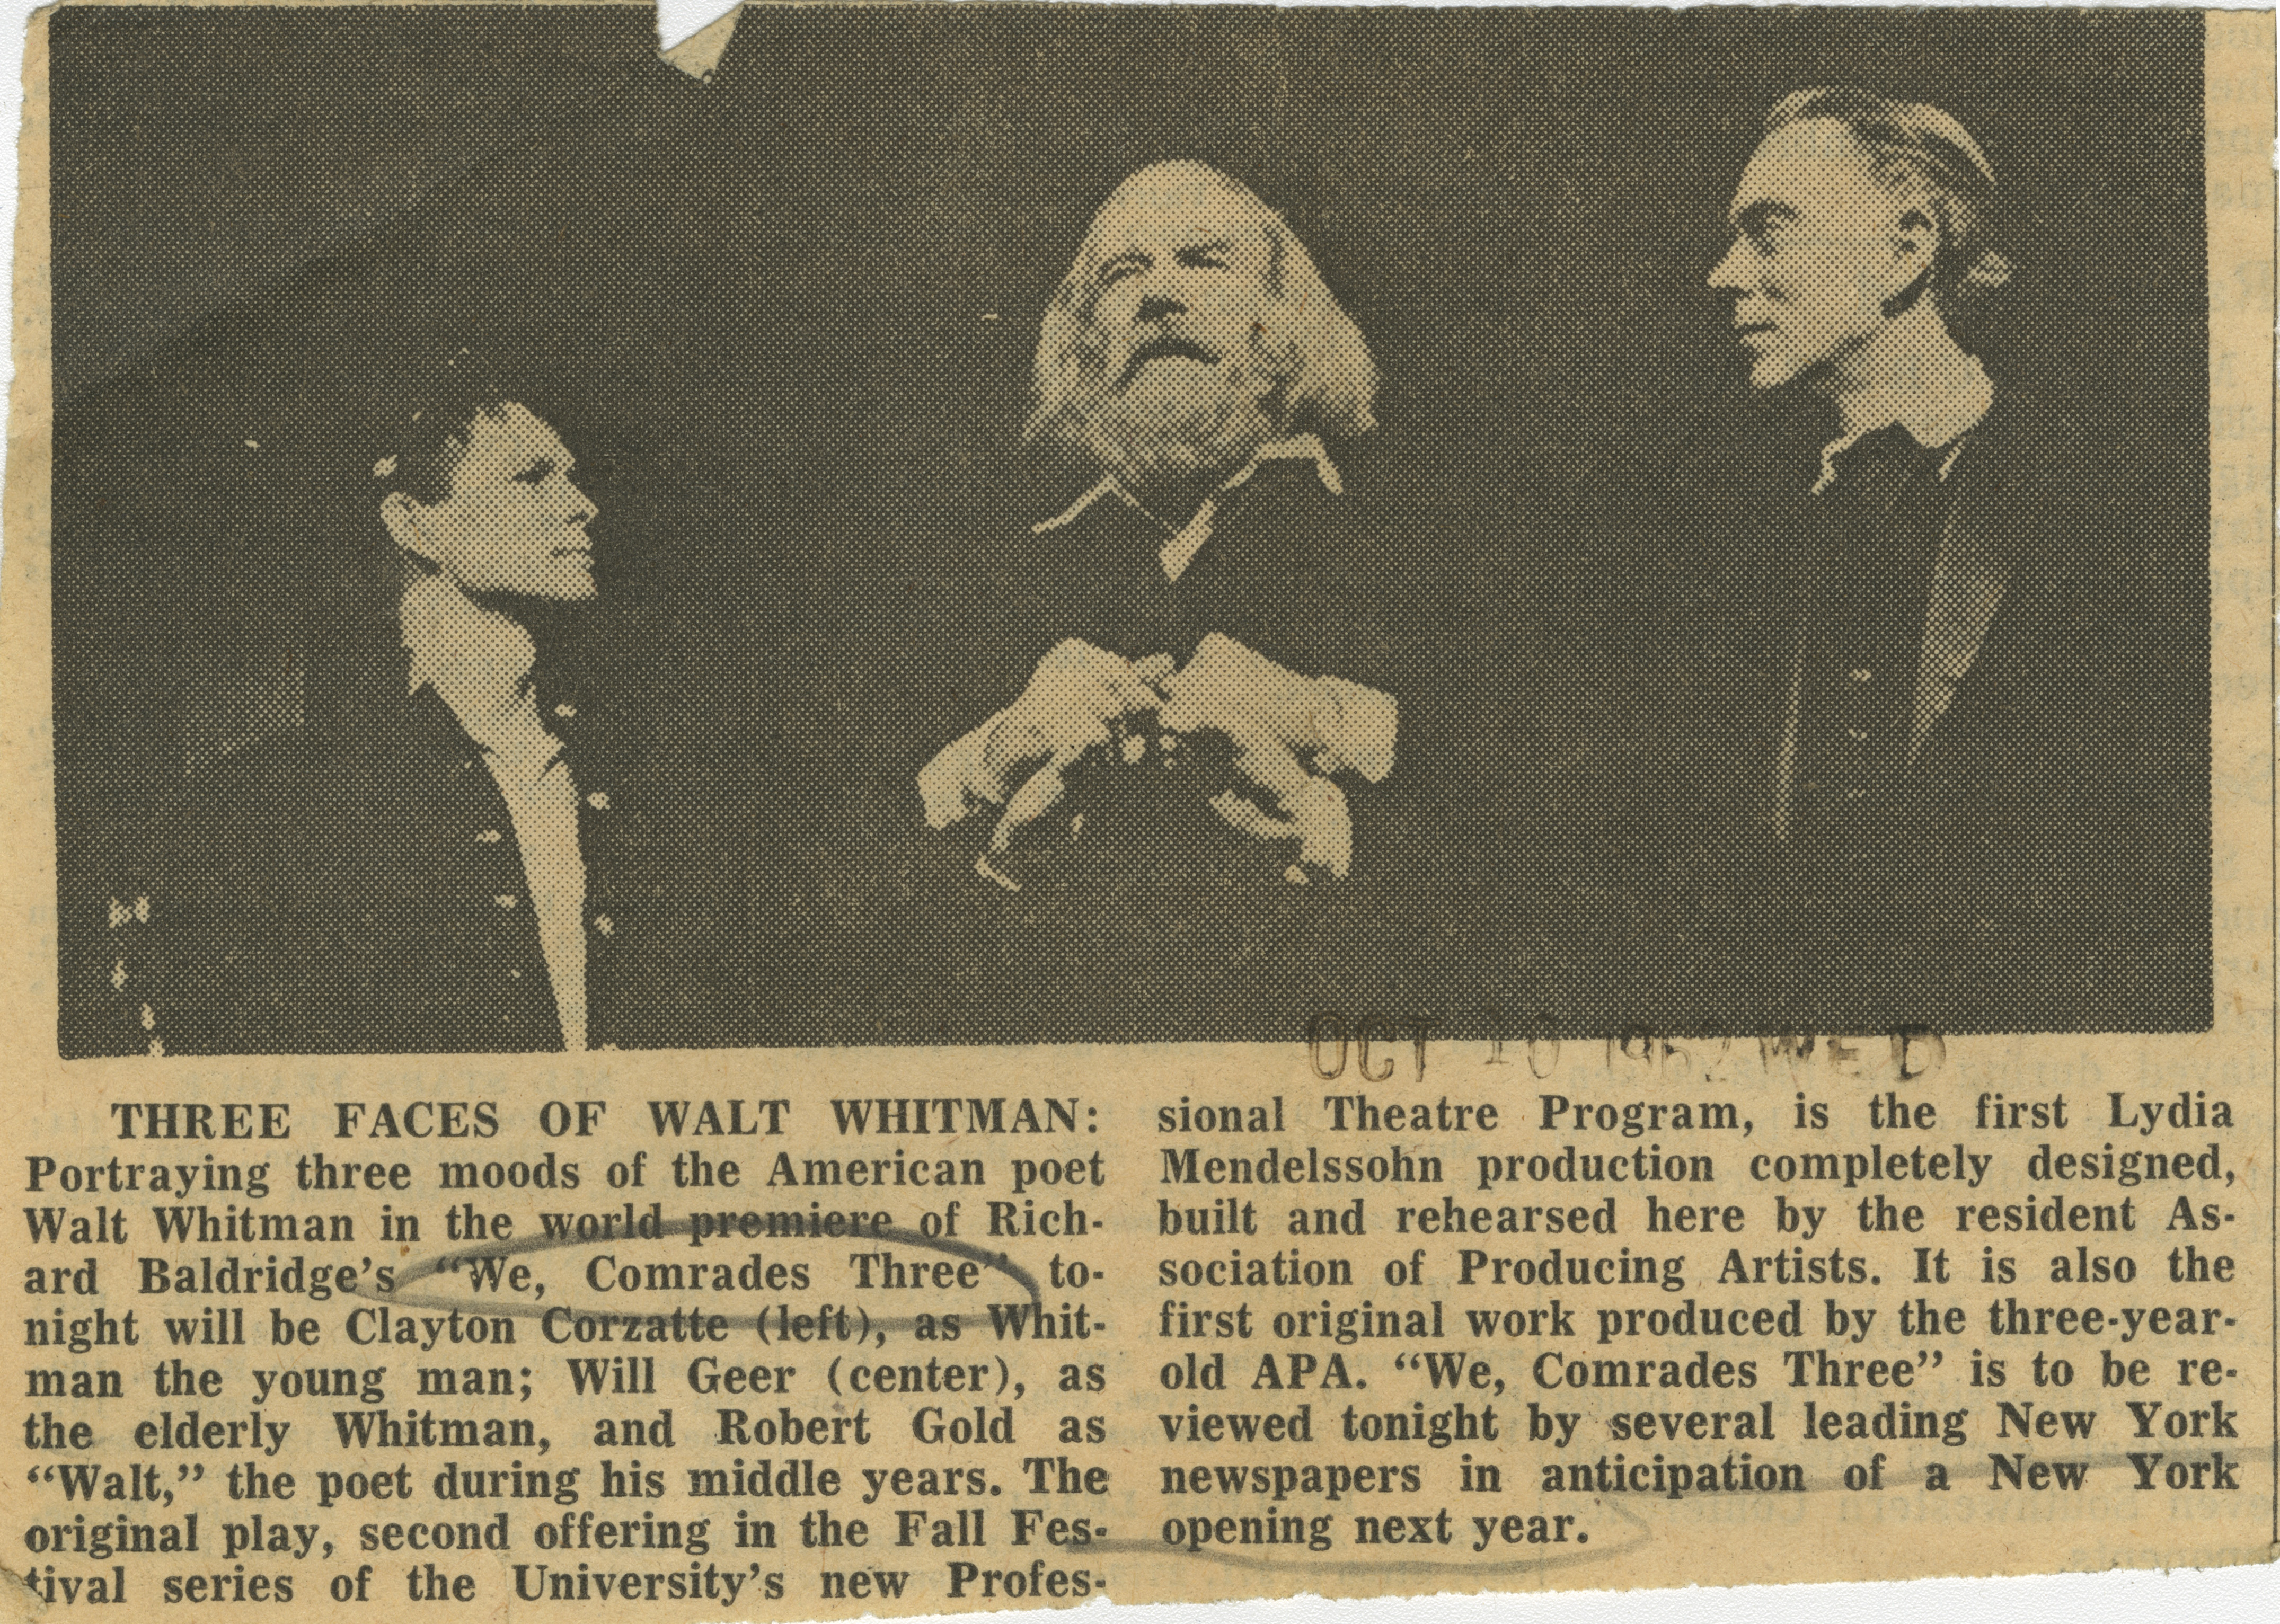 Three Faces of Walt Whitman image